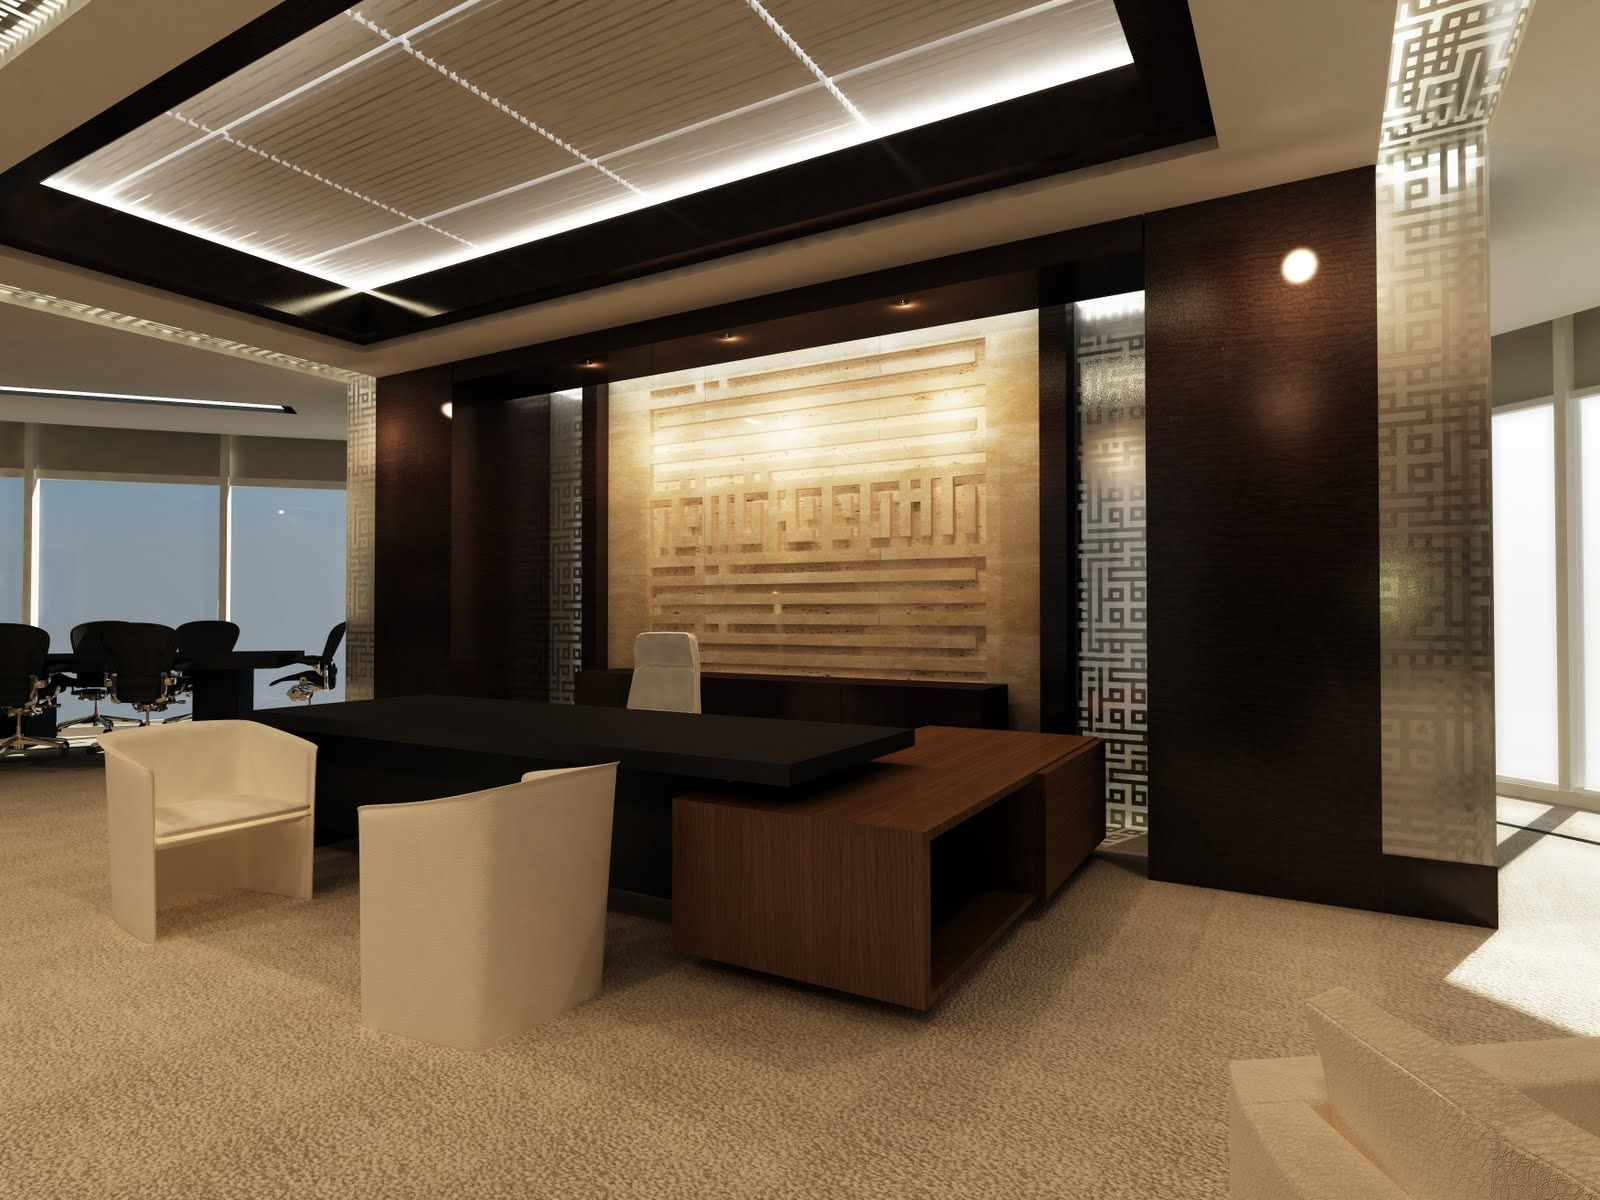 Office interior design intended for office interior design for Office design 3d